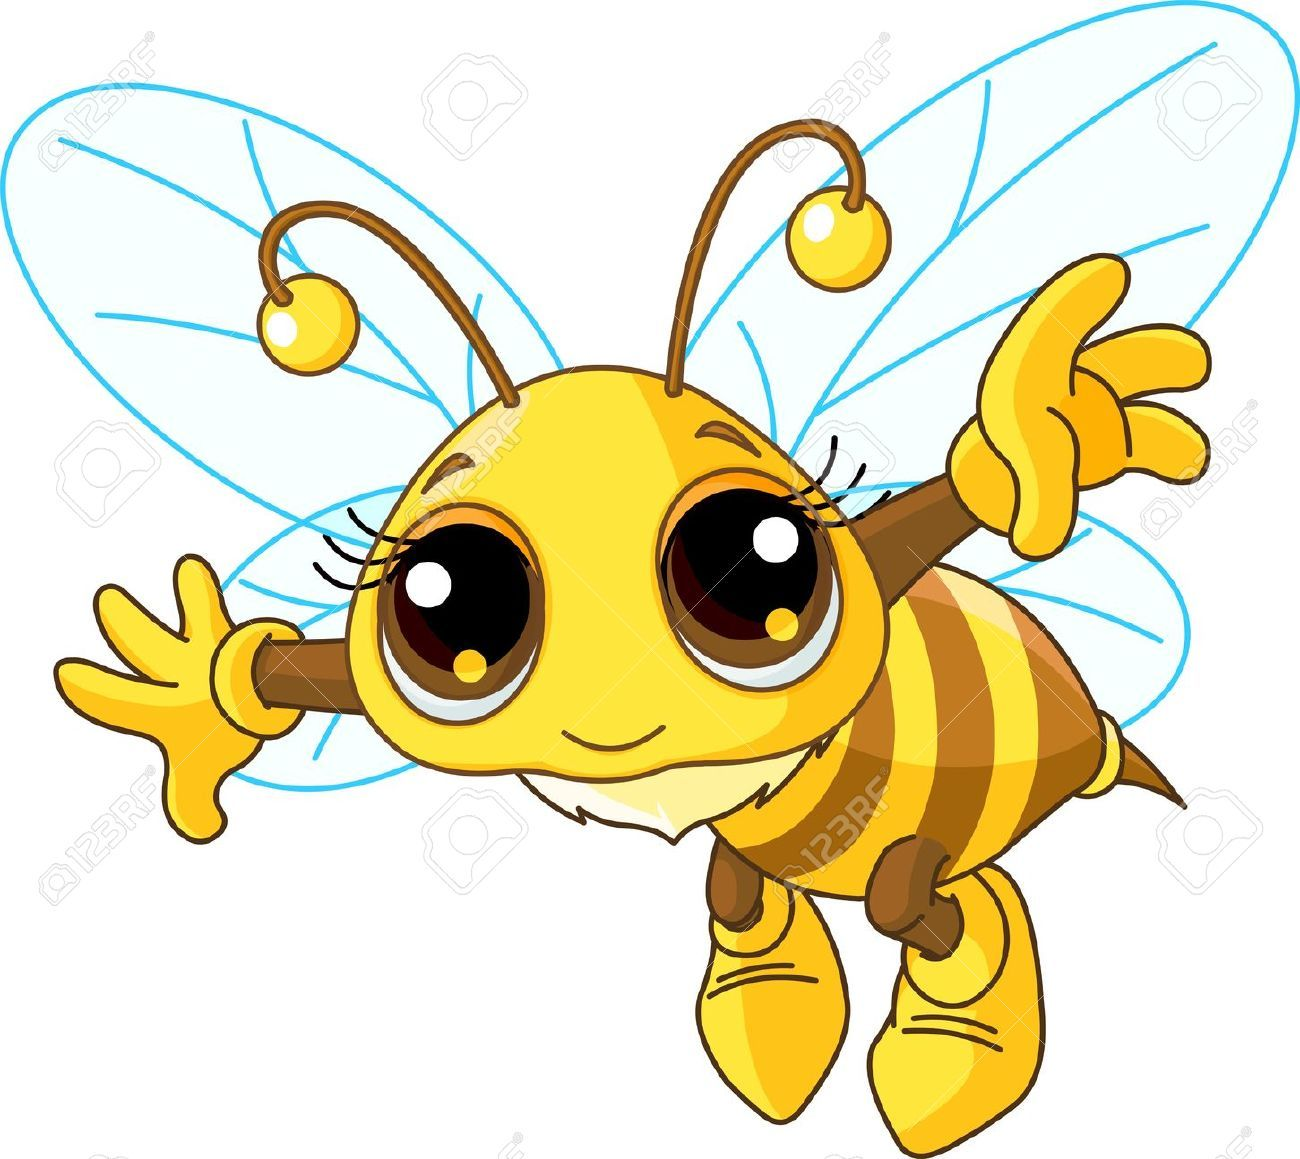 Stock photos pictures royalty. Bumblebee clipart face